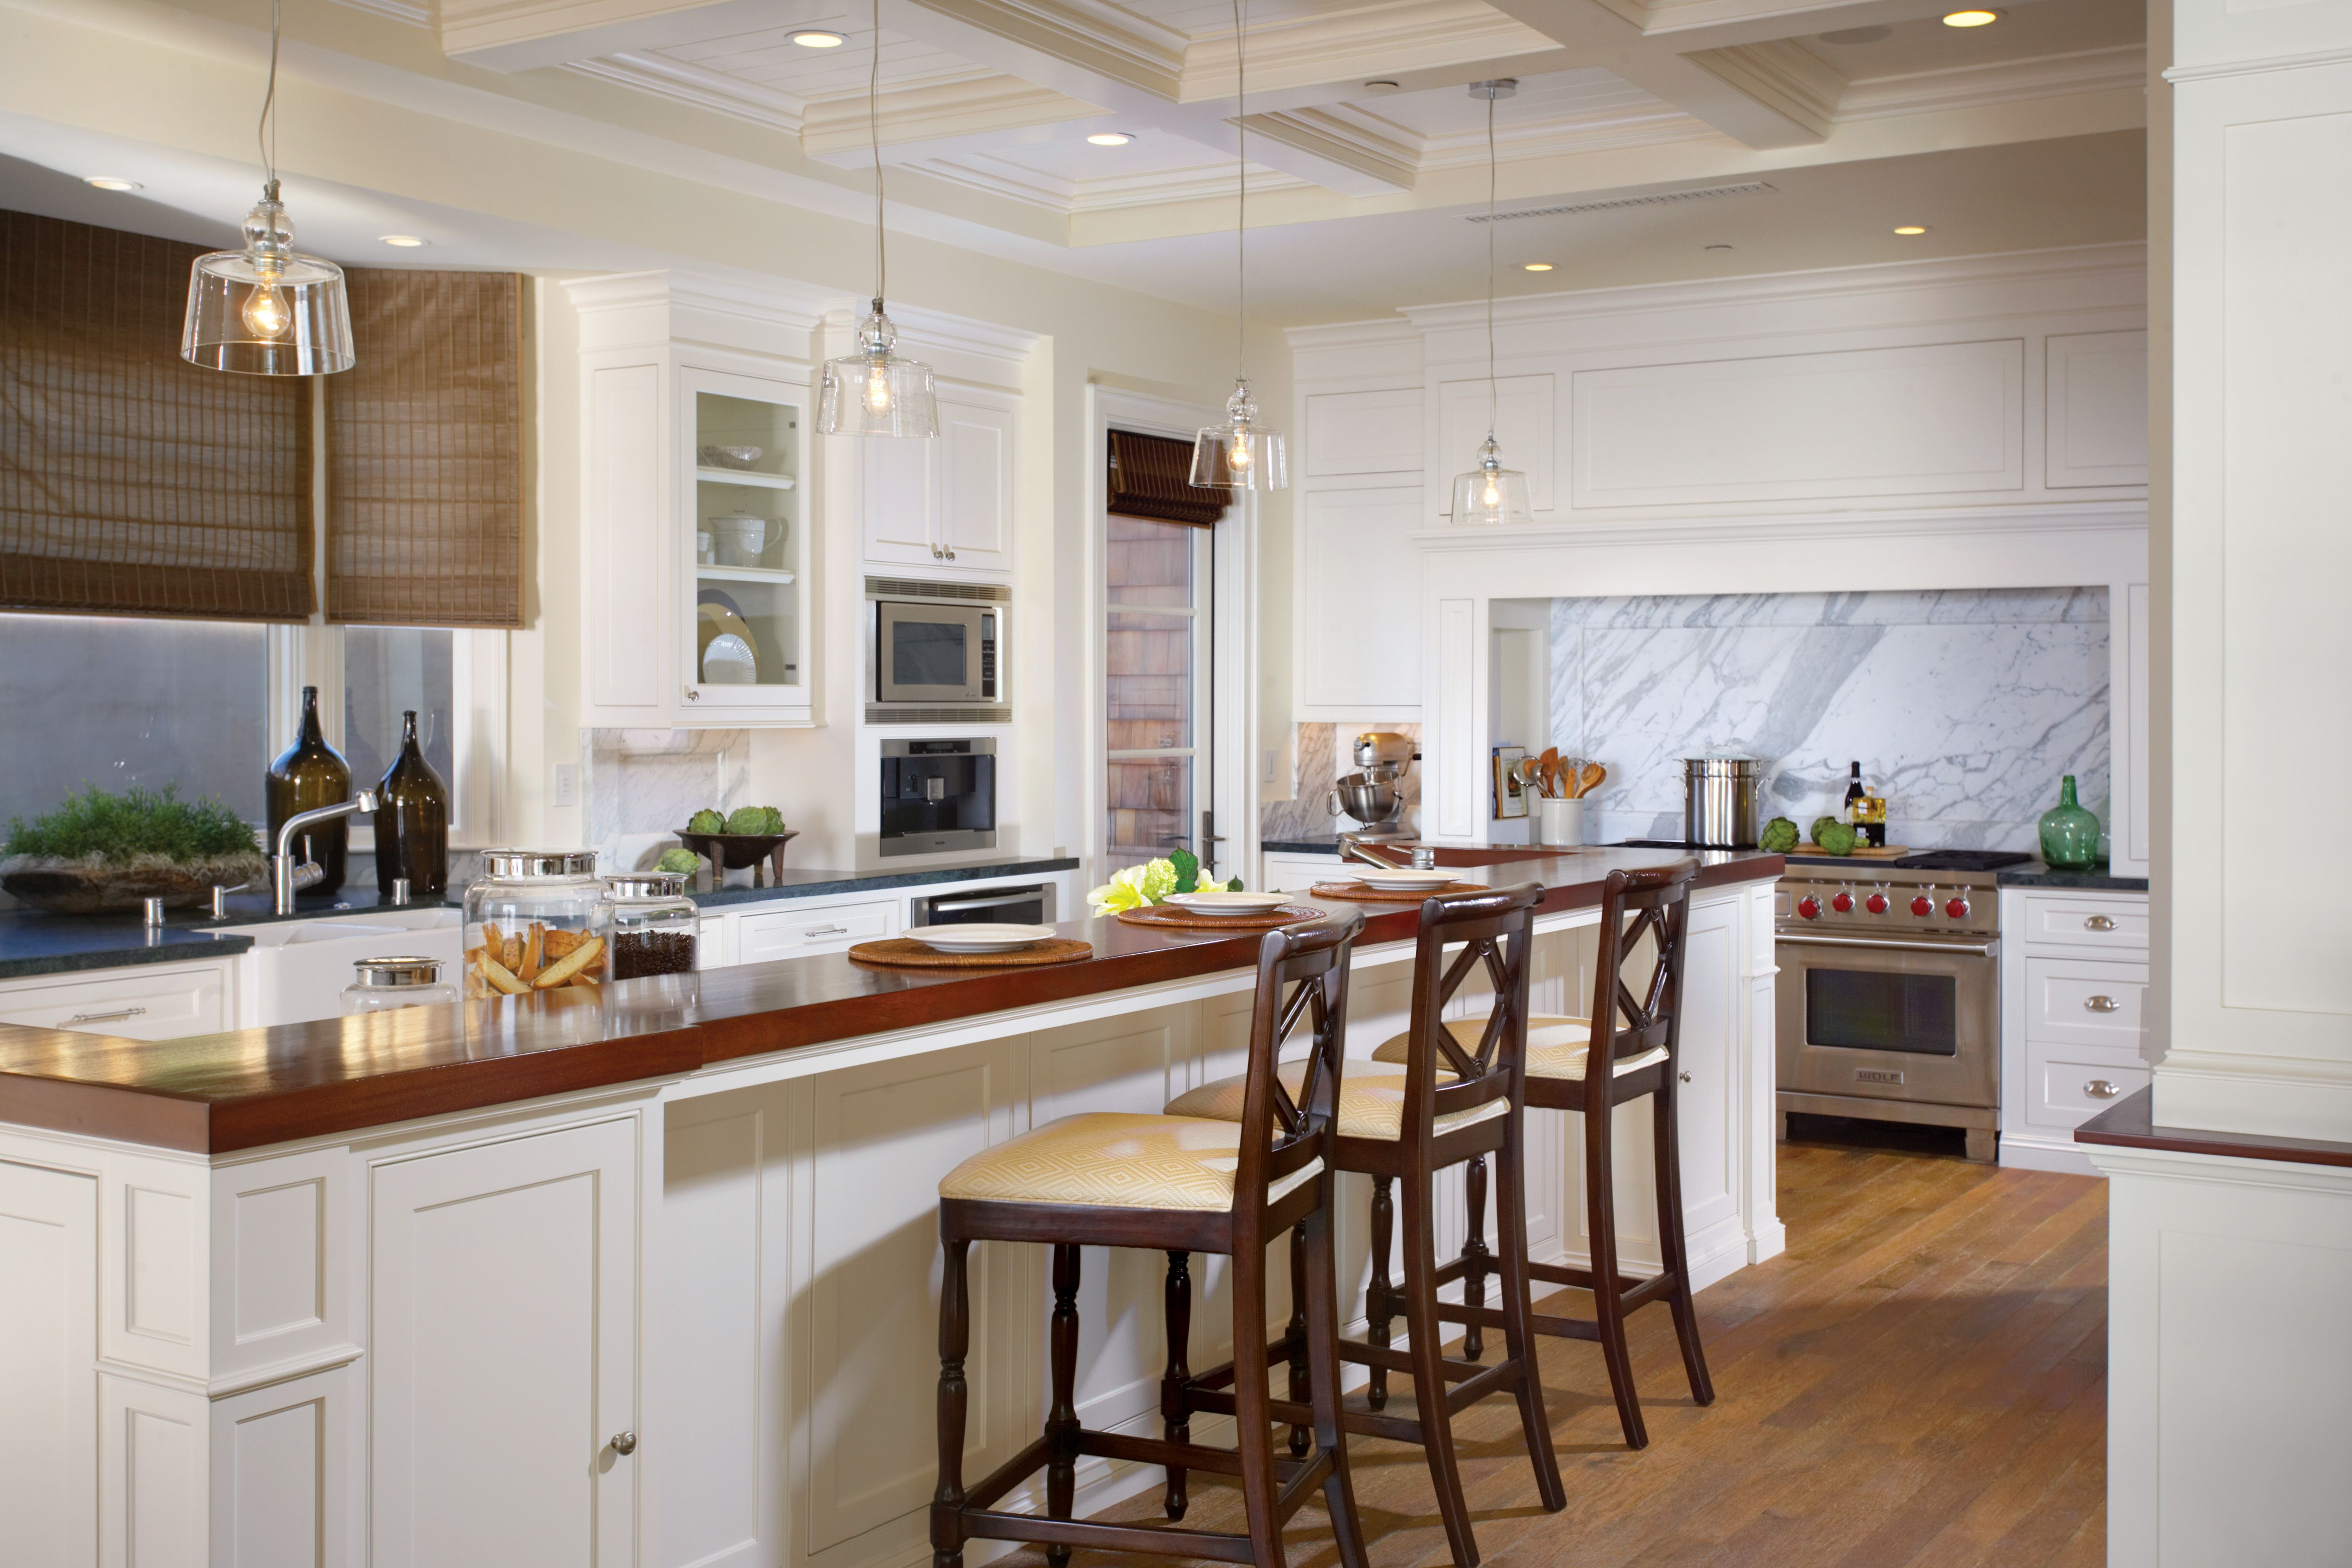 Cape cod style by wyd kitchens pinterest for Cape cod style kitchen cabinets